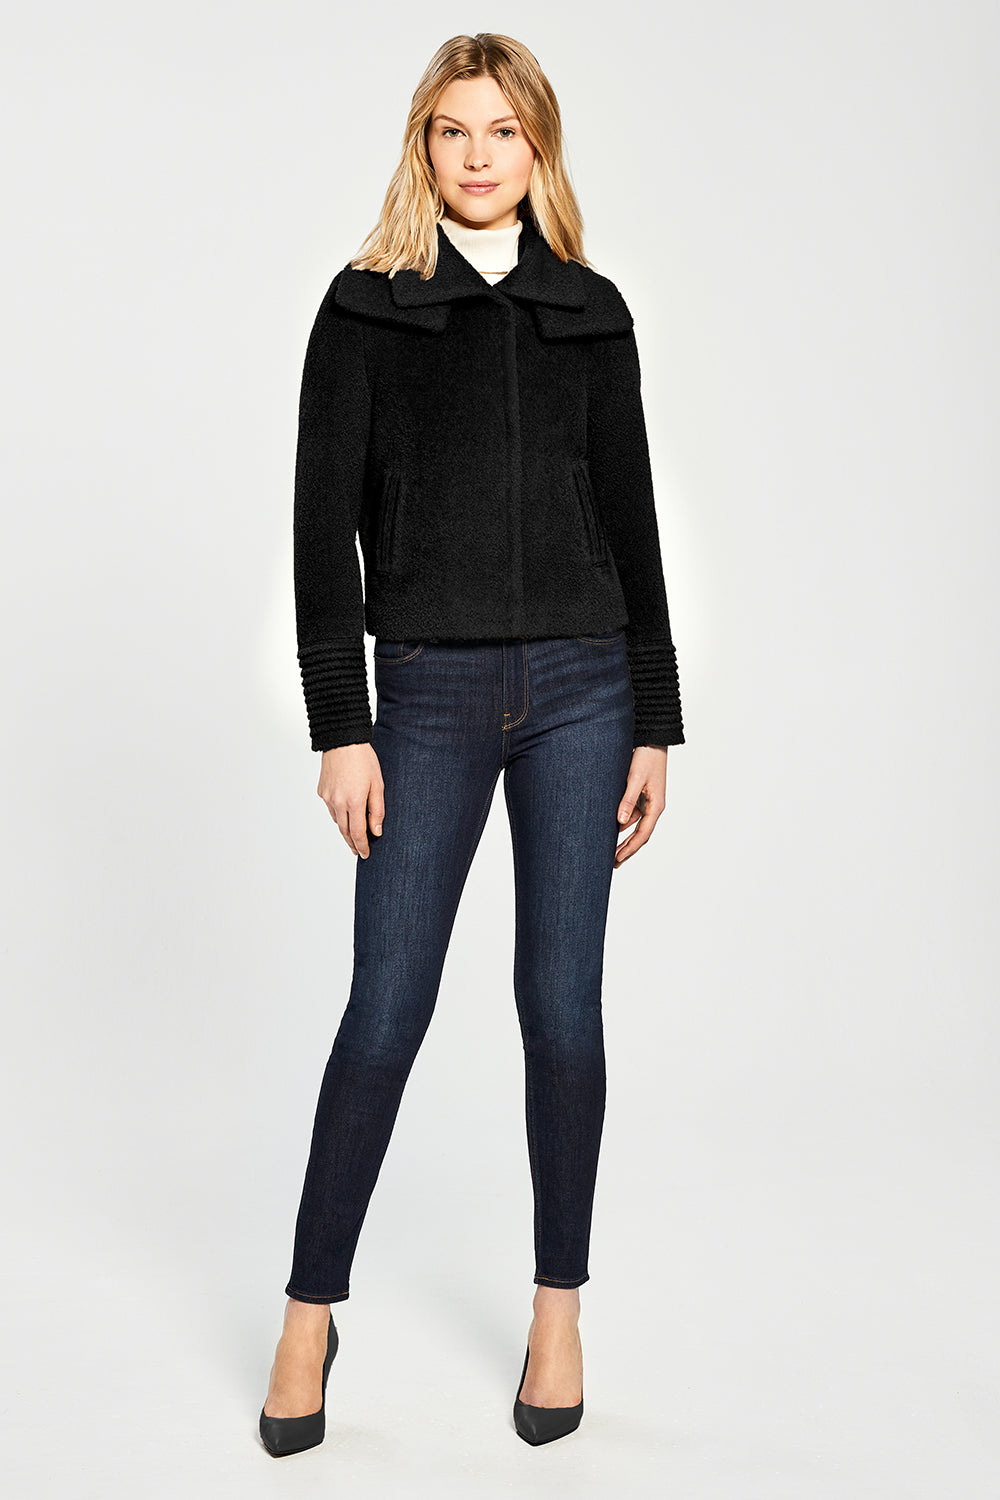 Sentaler Bouclé Alpaca Moto Jacket with Signature Double Collar featured in Bouclé Alpaca and available in Black. Seen from front.